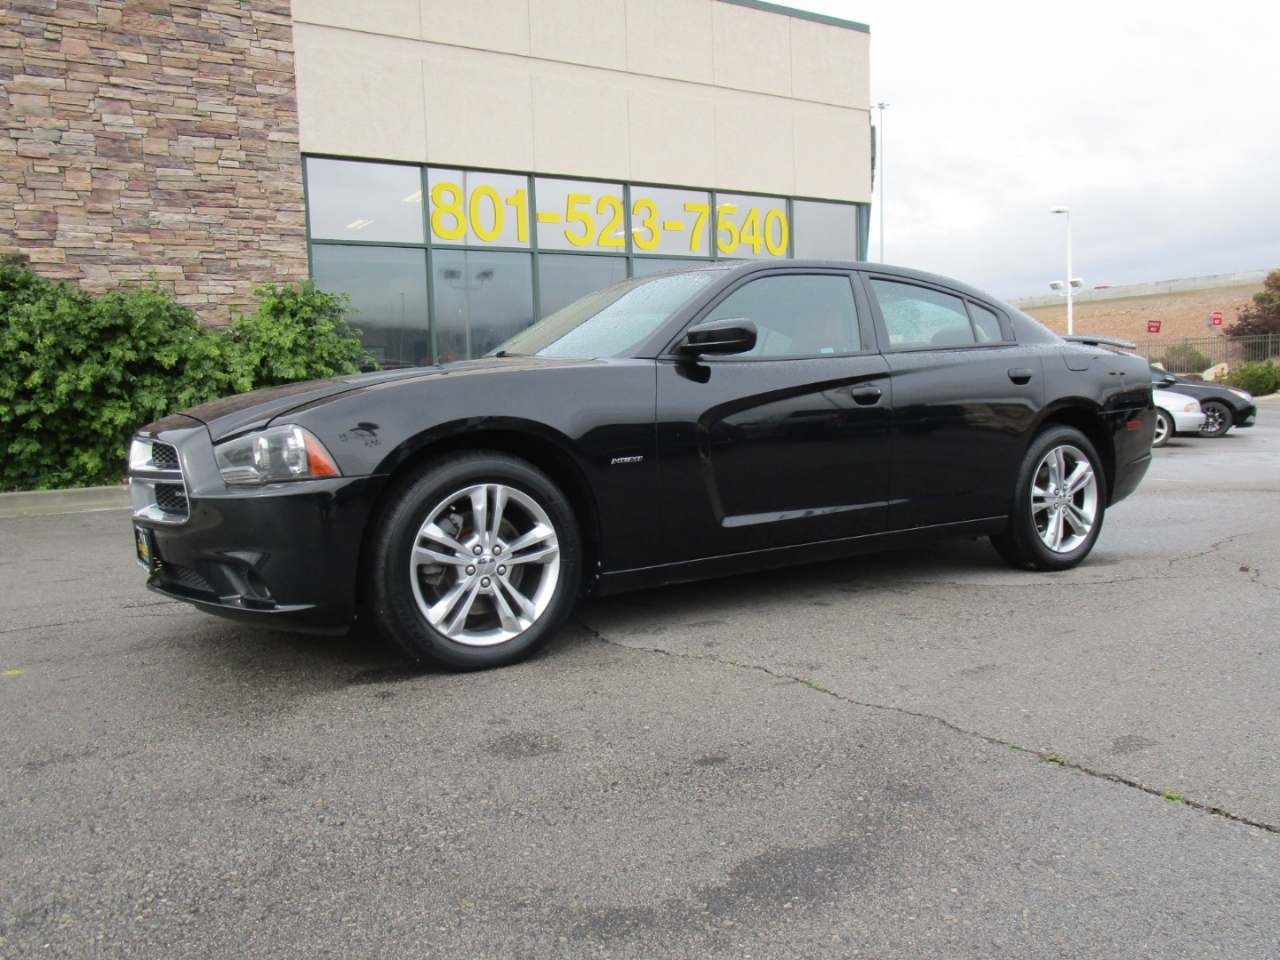 2012 Dodge Charger 4dr Sdn RT Plus AWD